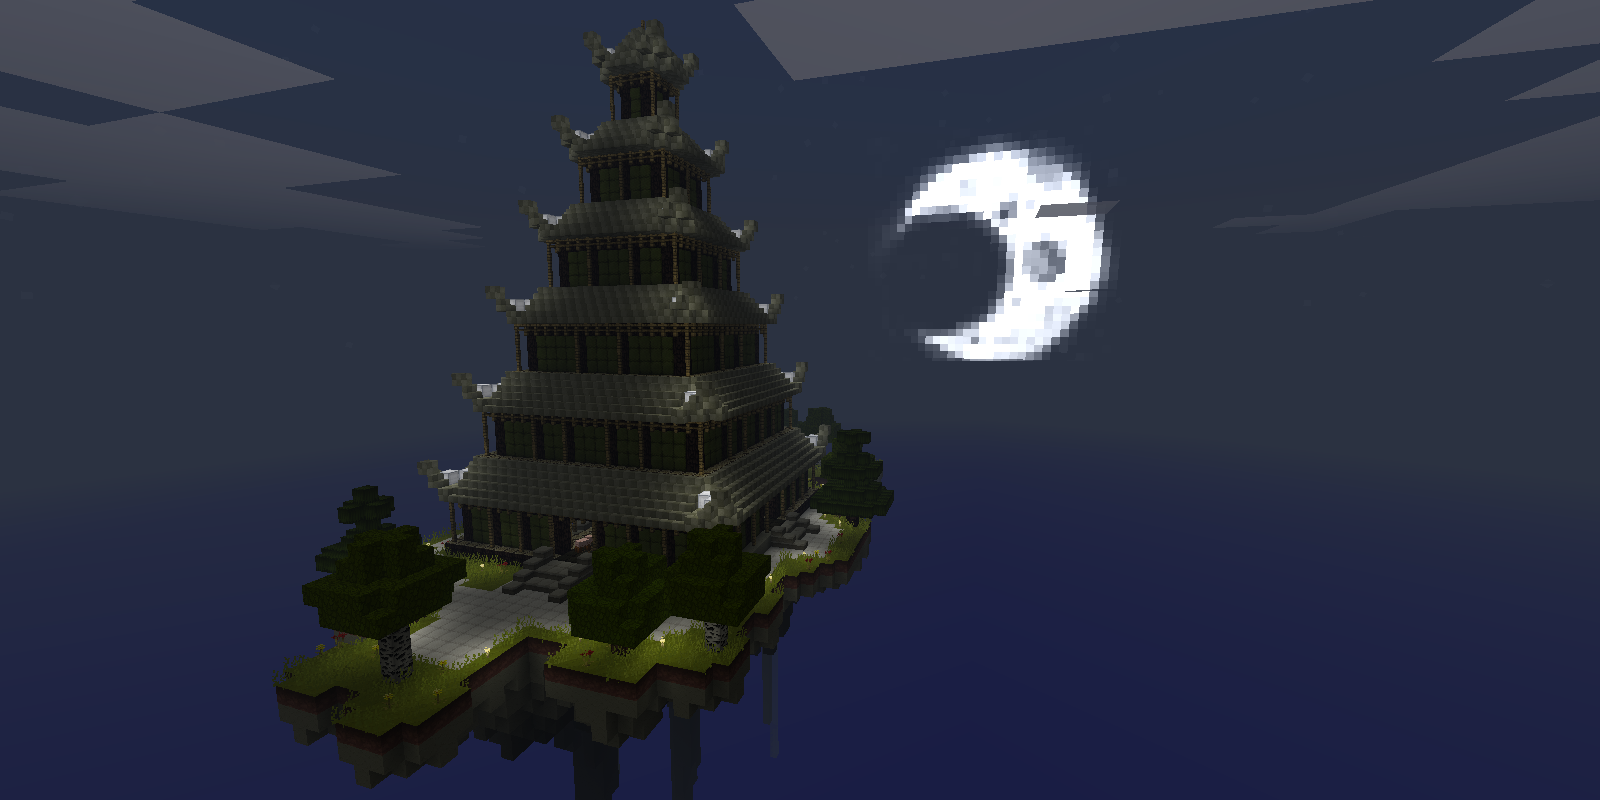 night - Minecraft Japanese Pagoda